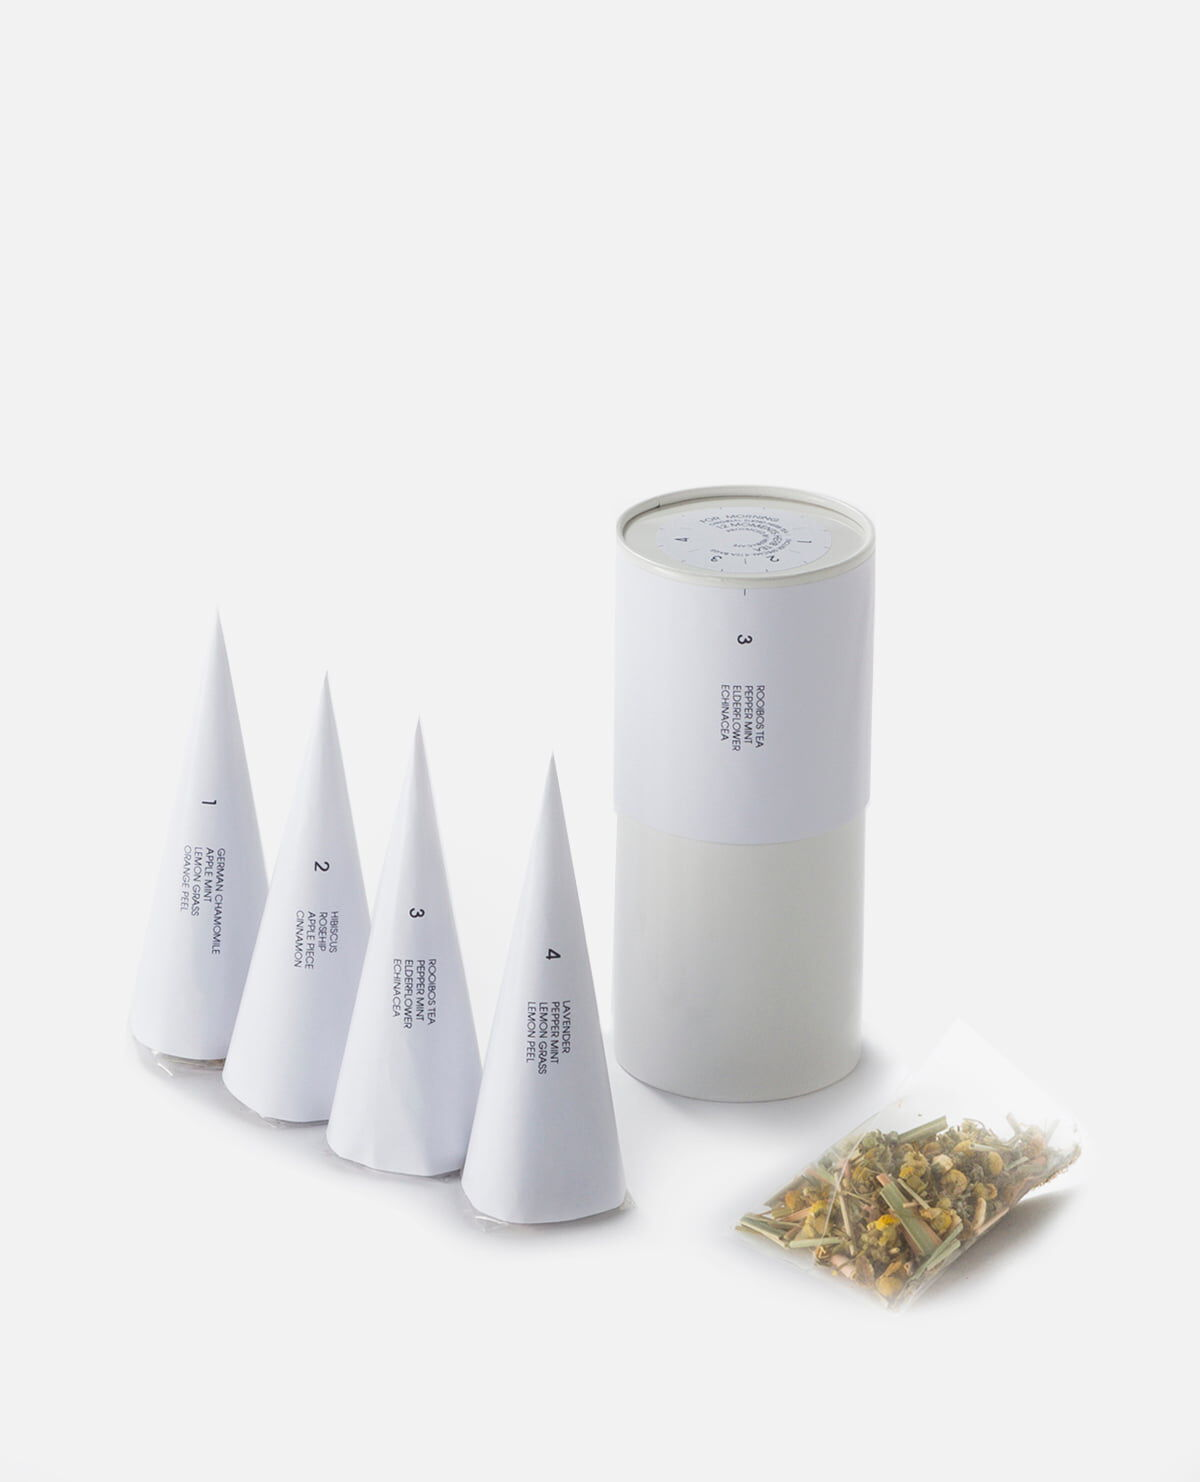 12MOMENTS HERB TEA for morning ハーブティーバッグ4種入り